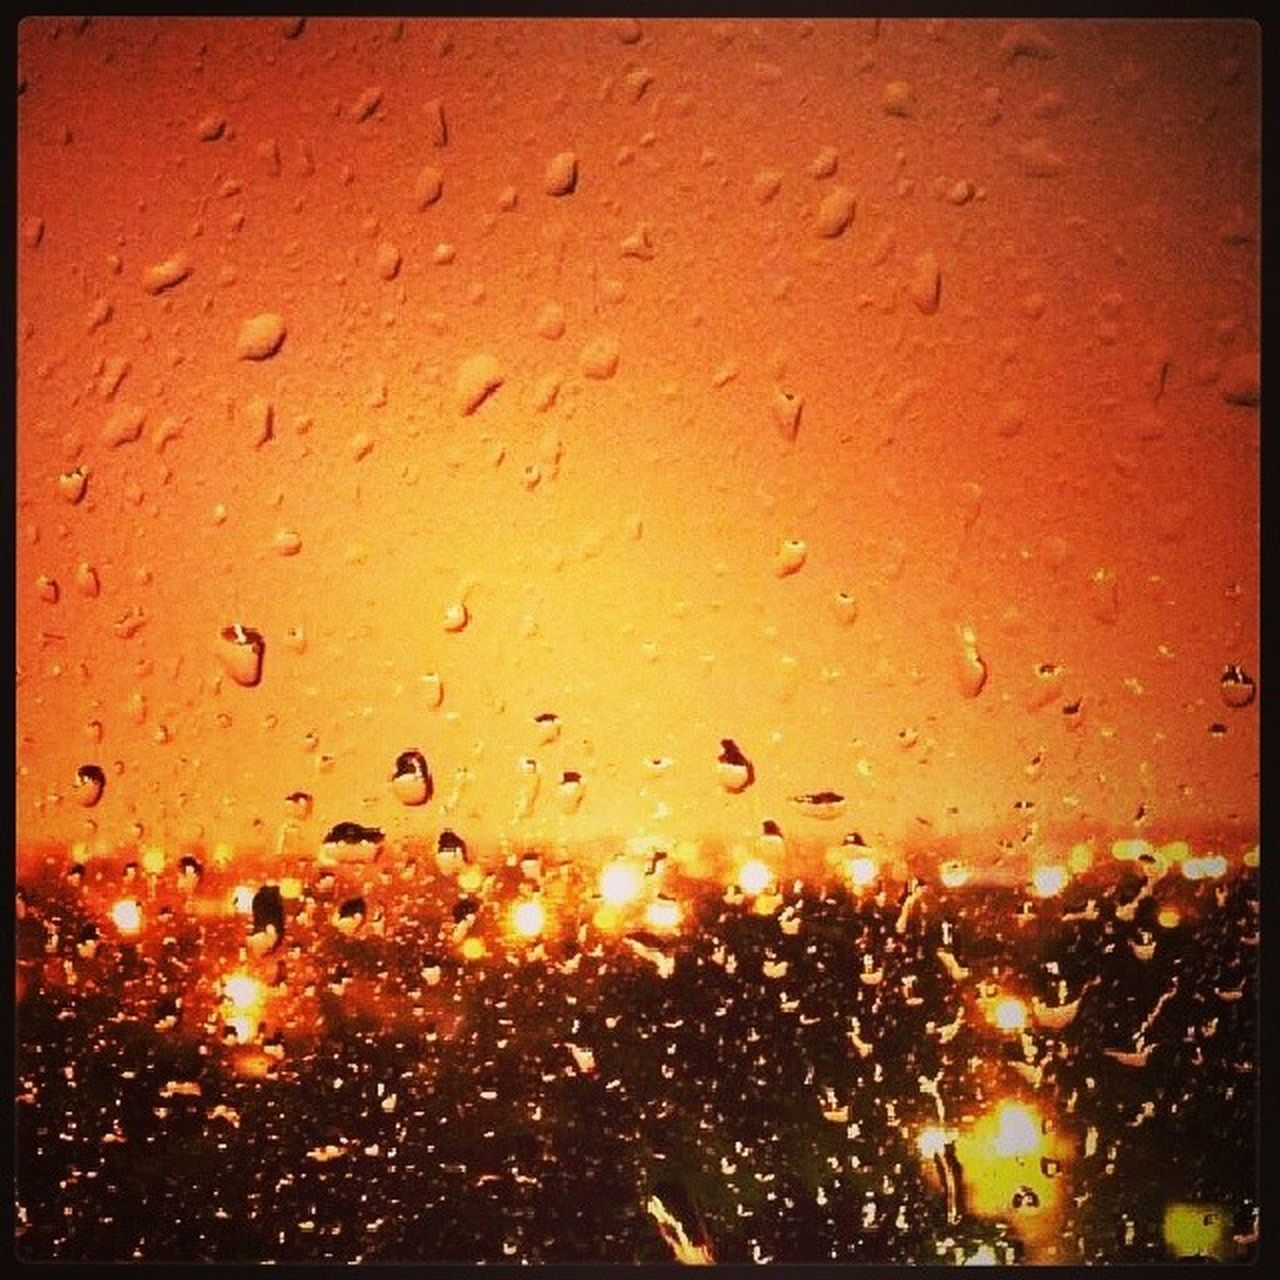 drop, backgrounds, full frame, wet, window, no people, orange color, close-up, water, condensation, raindrop, indoors, illuminated, nature, night, sky, freshness